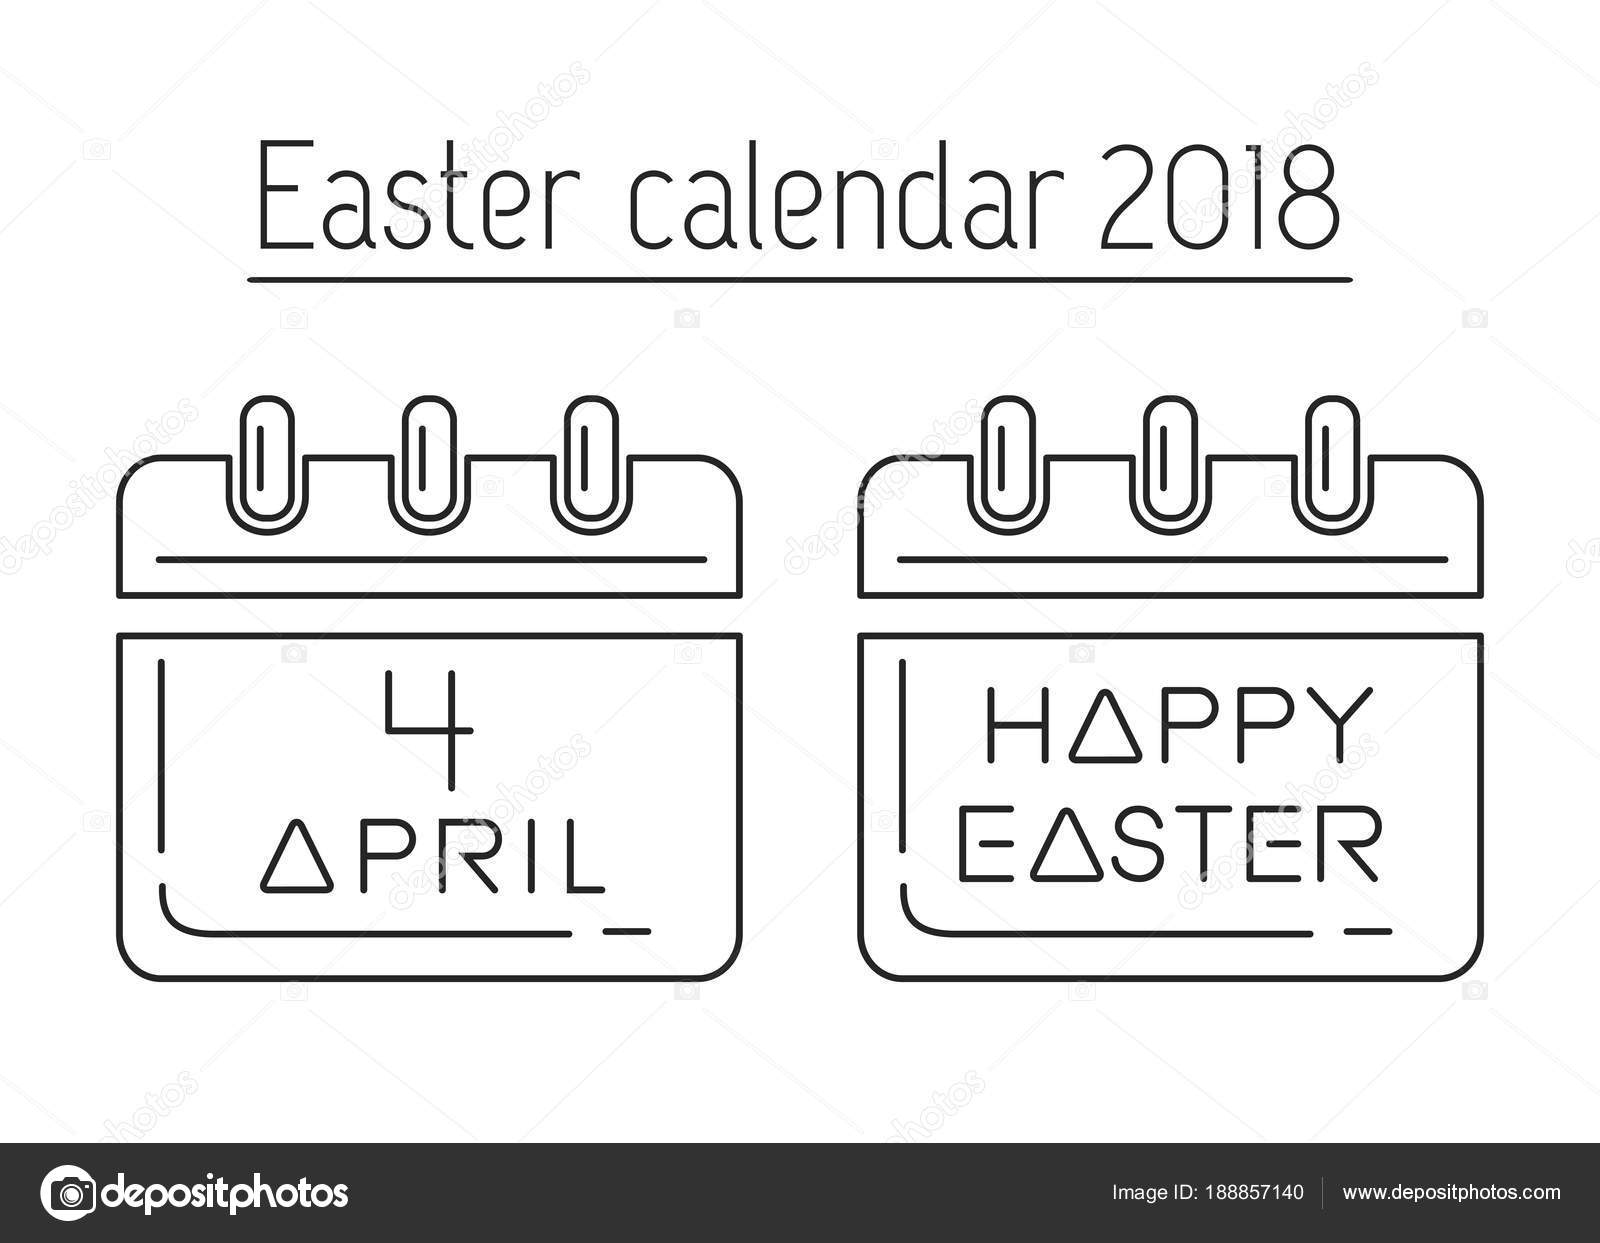 easter calendar catholic easter 2018 calendar with a festive date april 4 line icon set vector illustration vector by kiberstalker